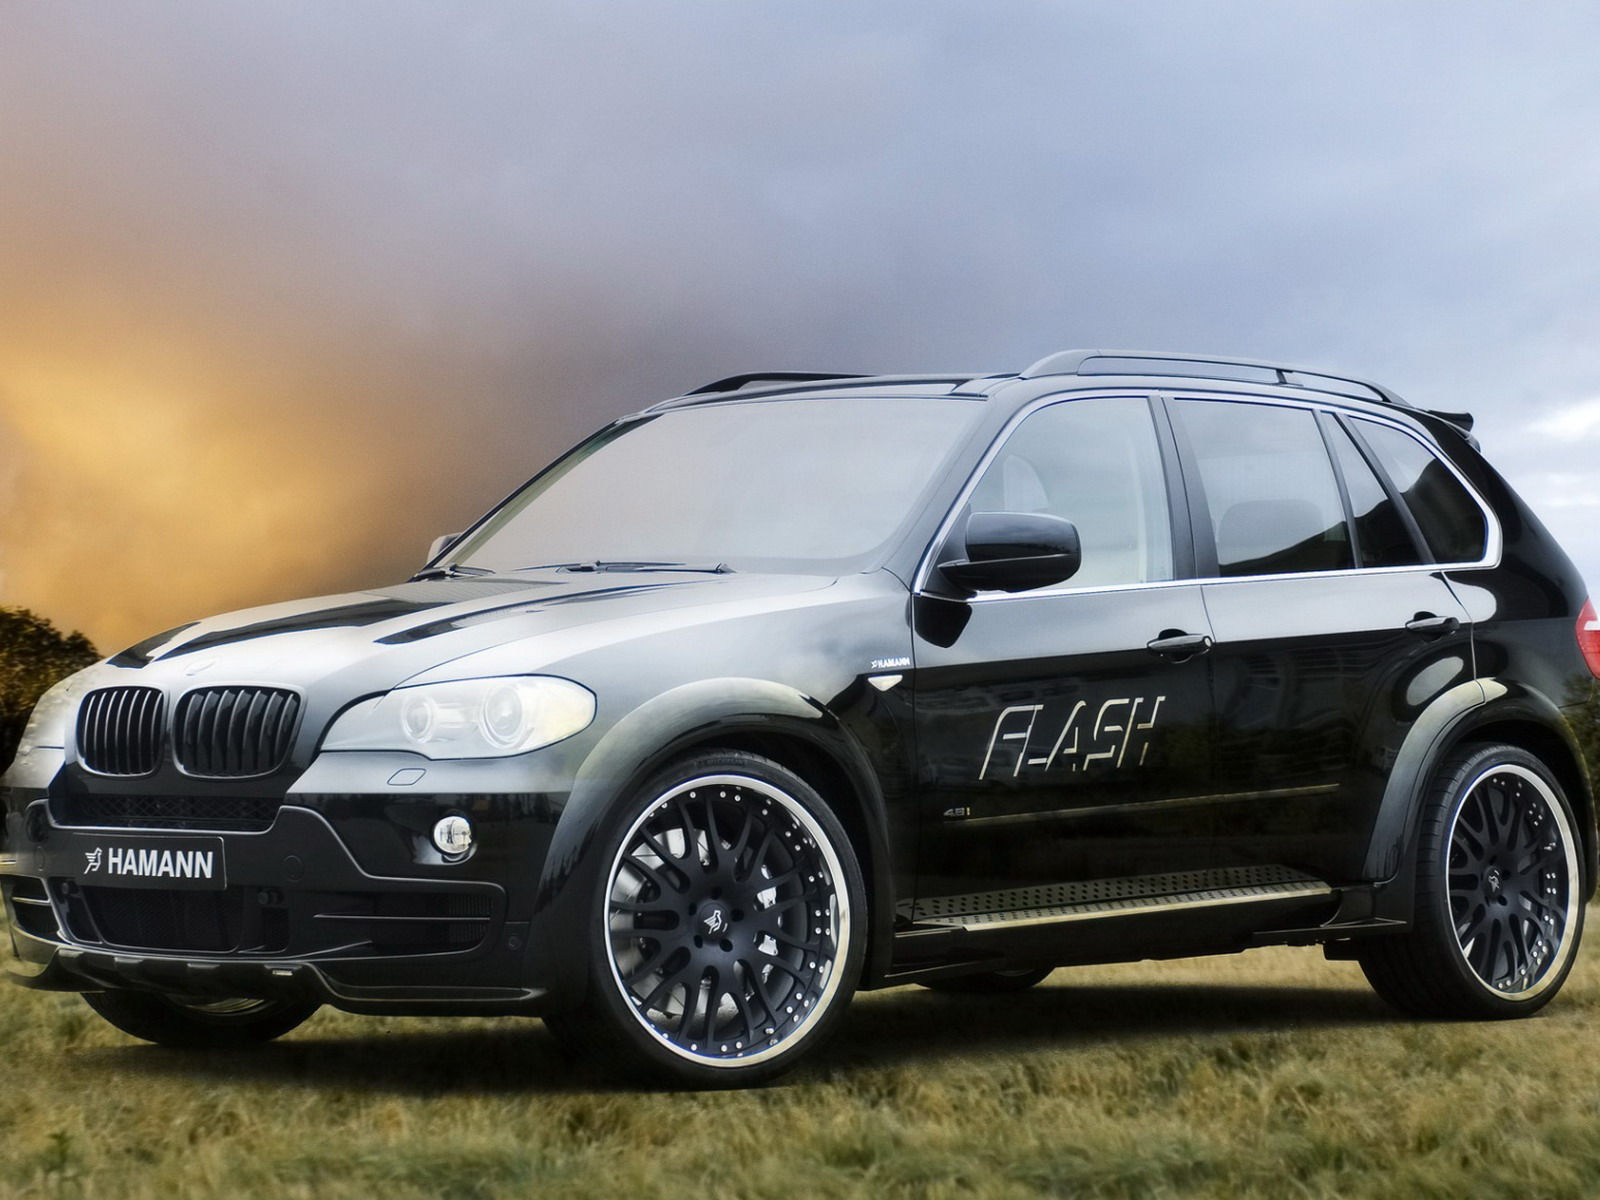 Wallpaper Bmw X5 Wallpapers Download